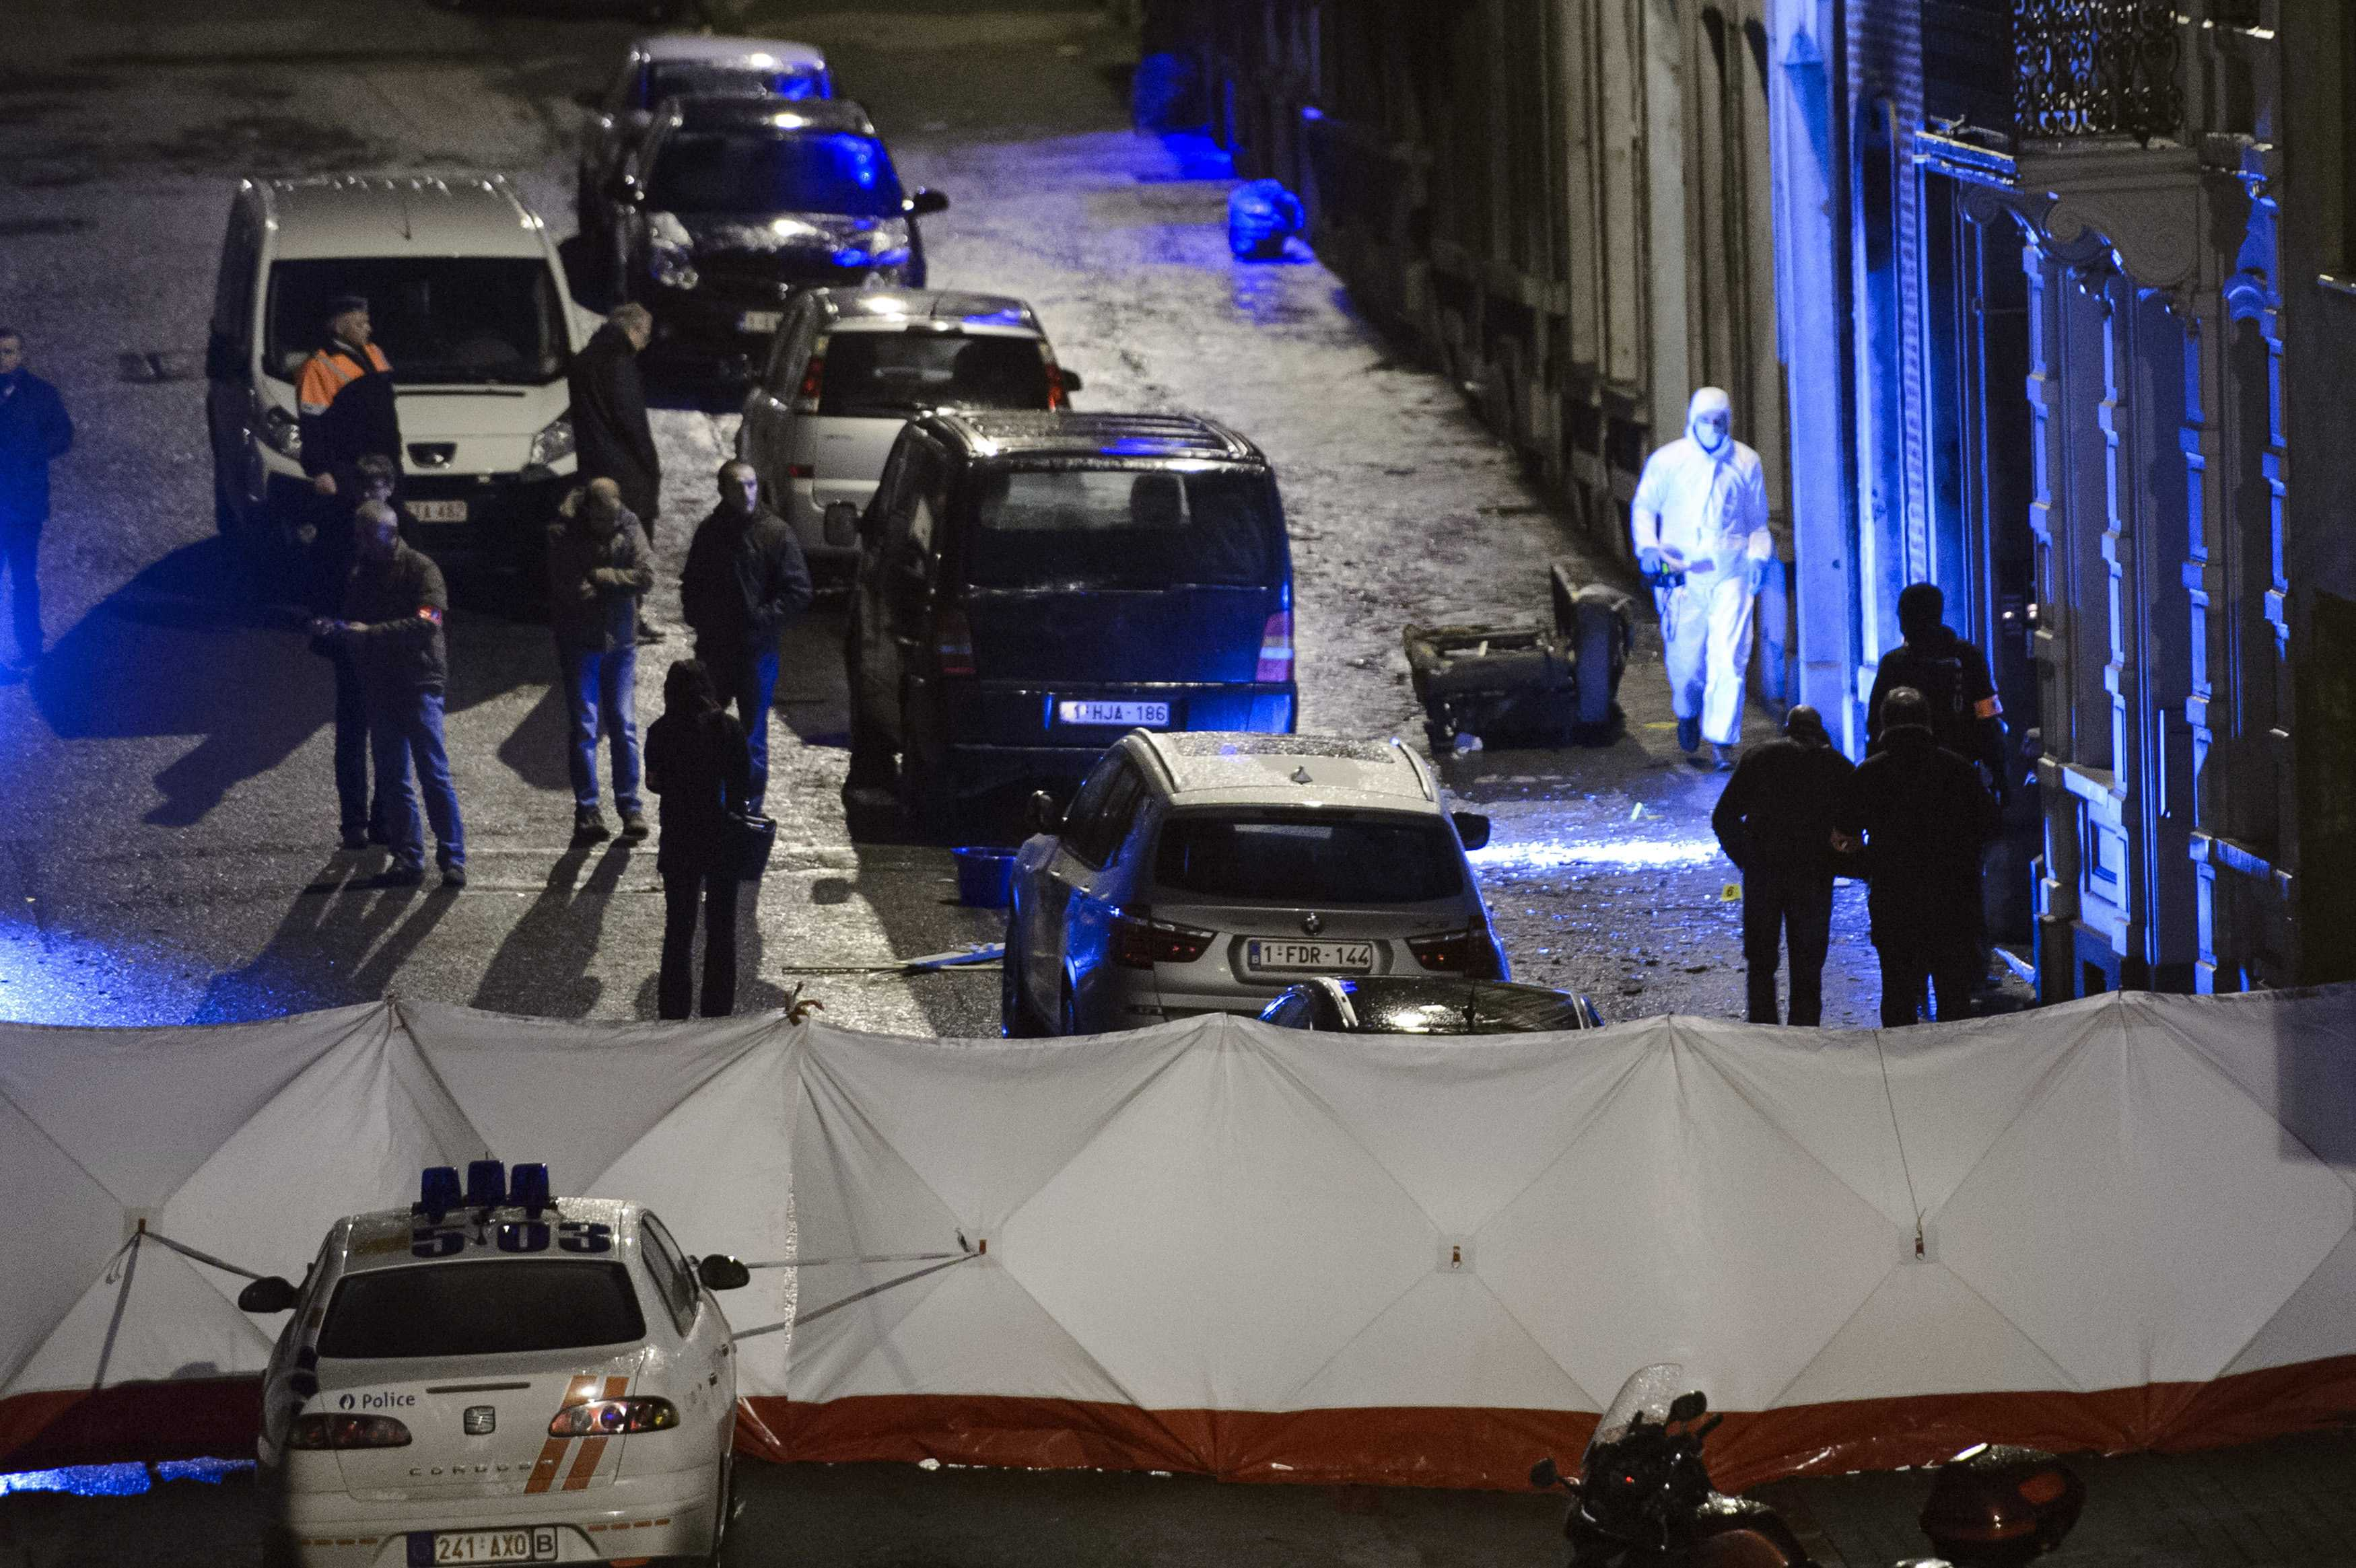 Belgian police kill two in raid on suspected Islamists